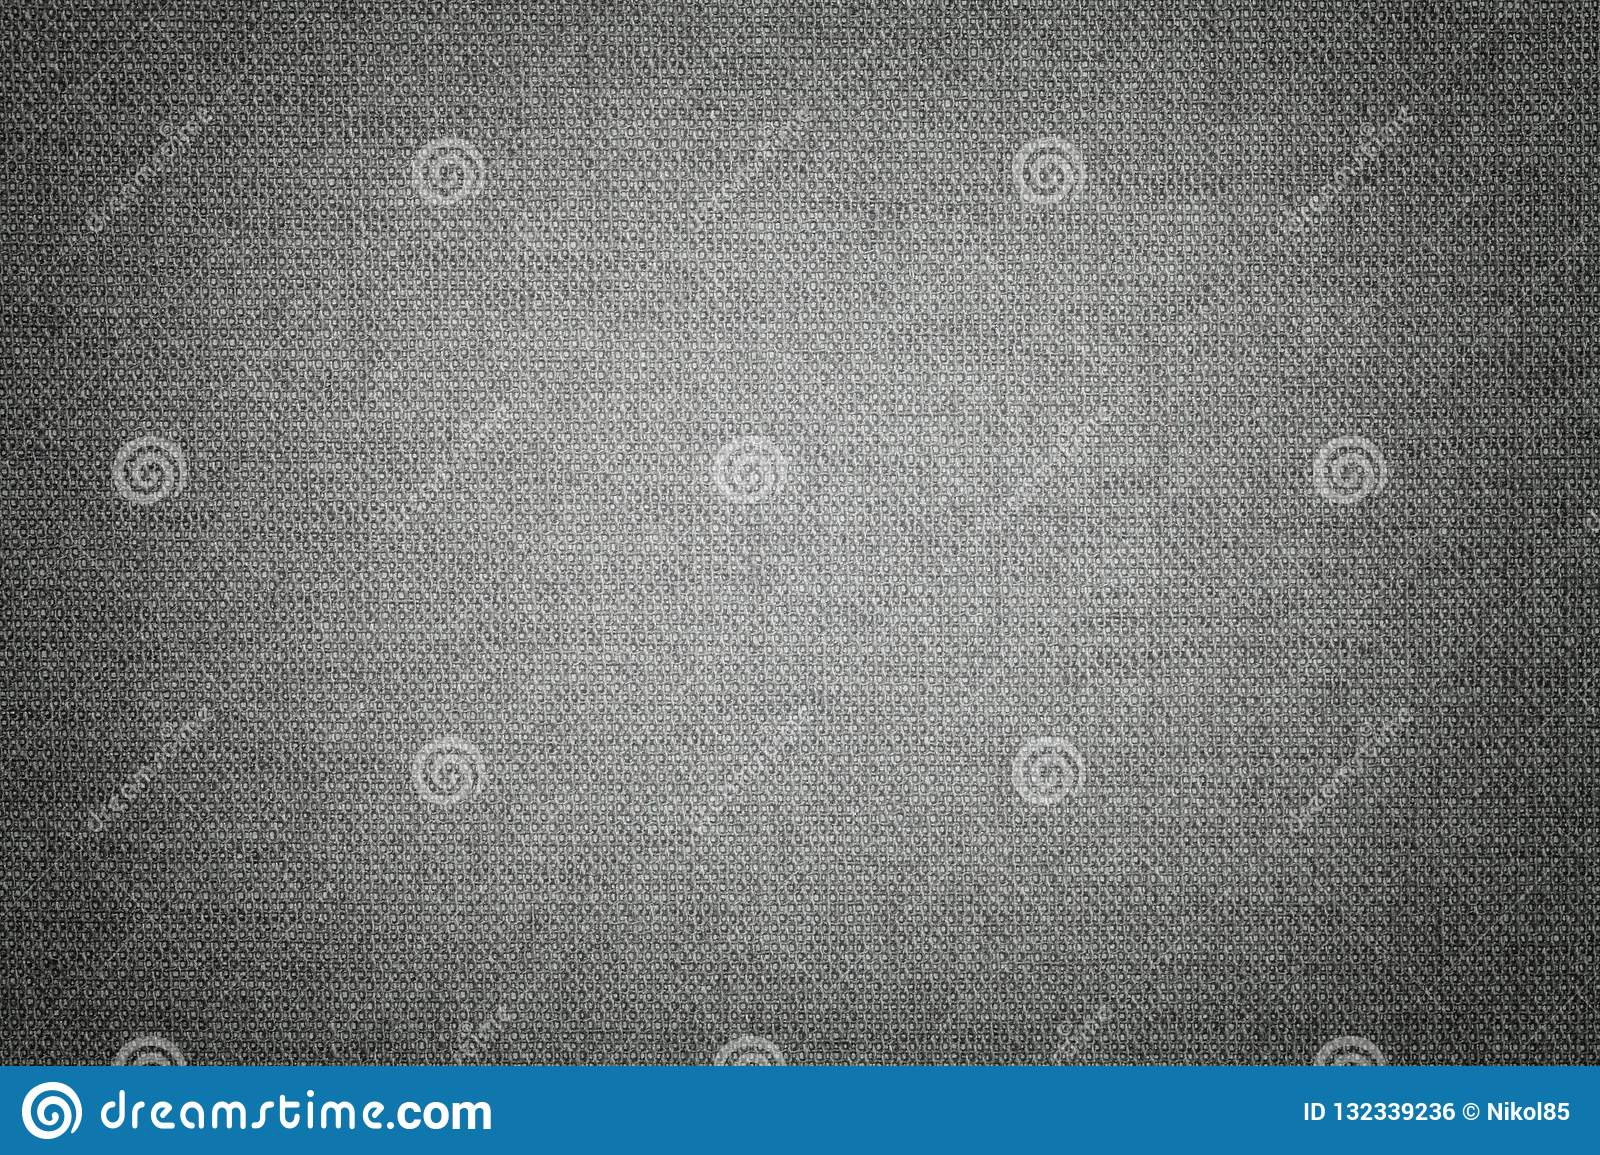 Dark gray background from a textile material with wicker pattern, closeup